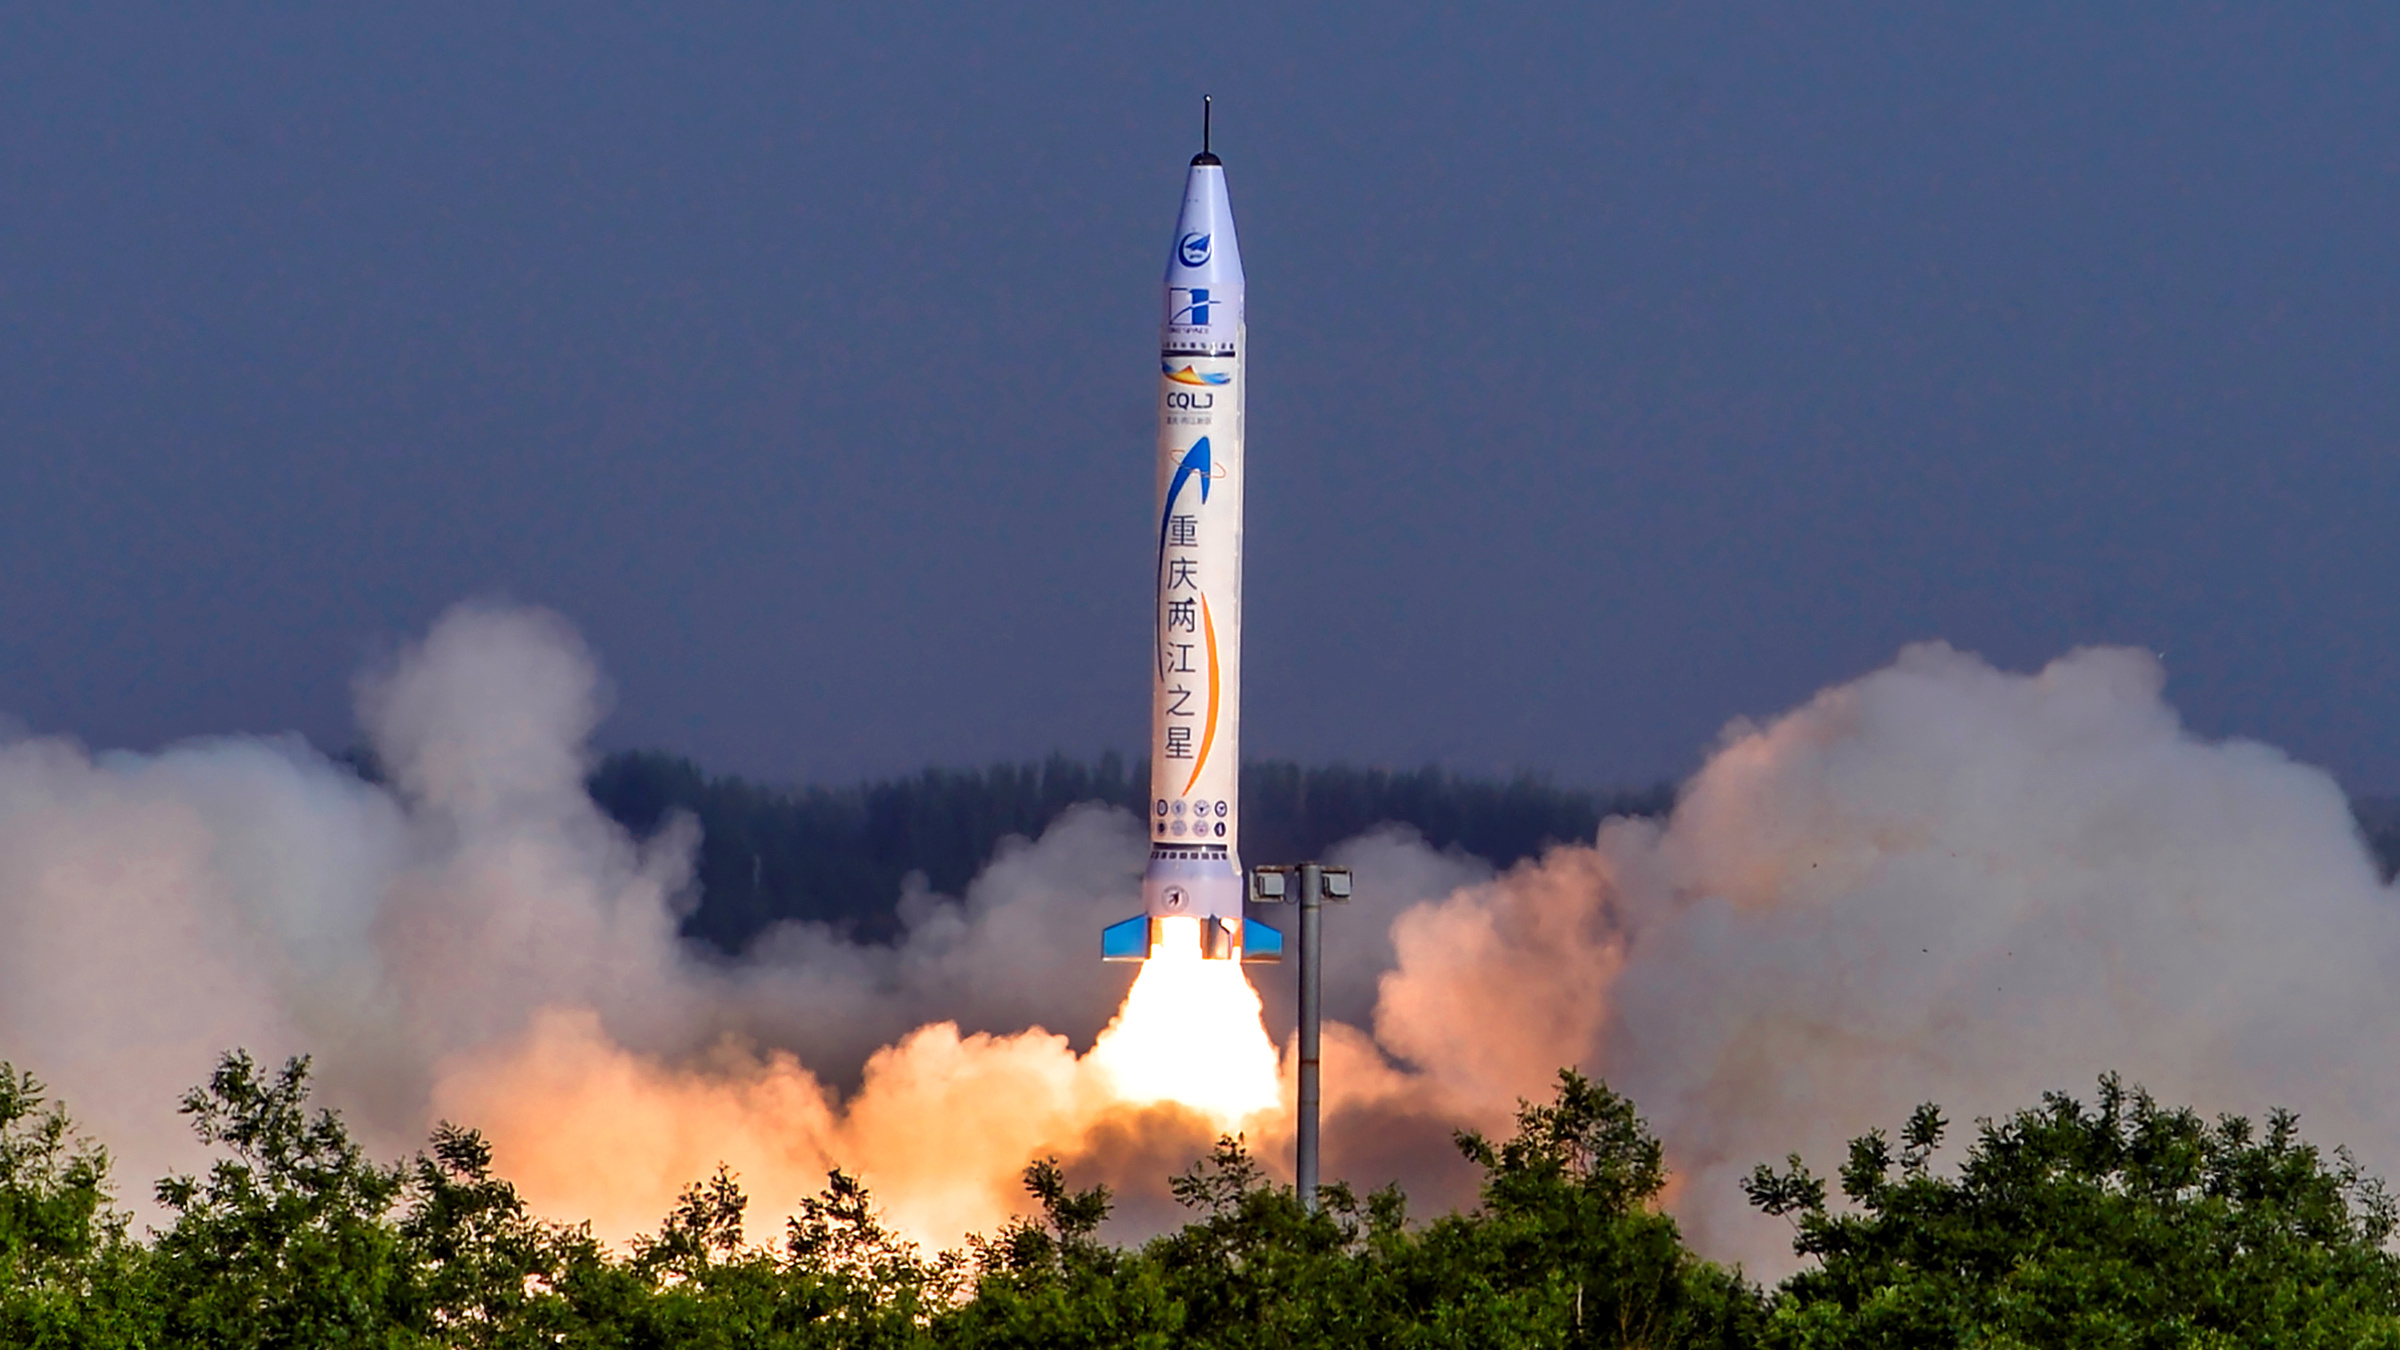 """""""Chongqing Liangjiang Star"""" rocket, developed by Chinese private firm OneSpace Technology, takes off from a launchpad in an undisclosed location in northwestern China May 17, 2018."""